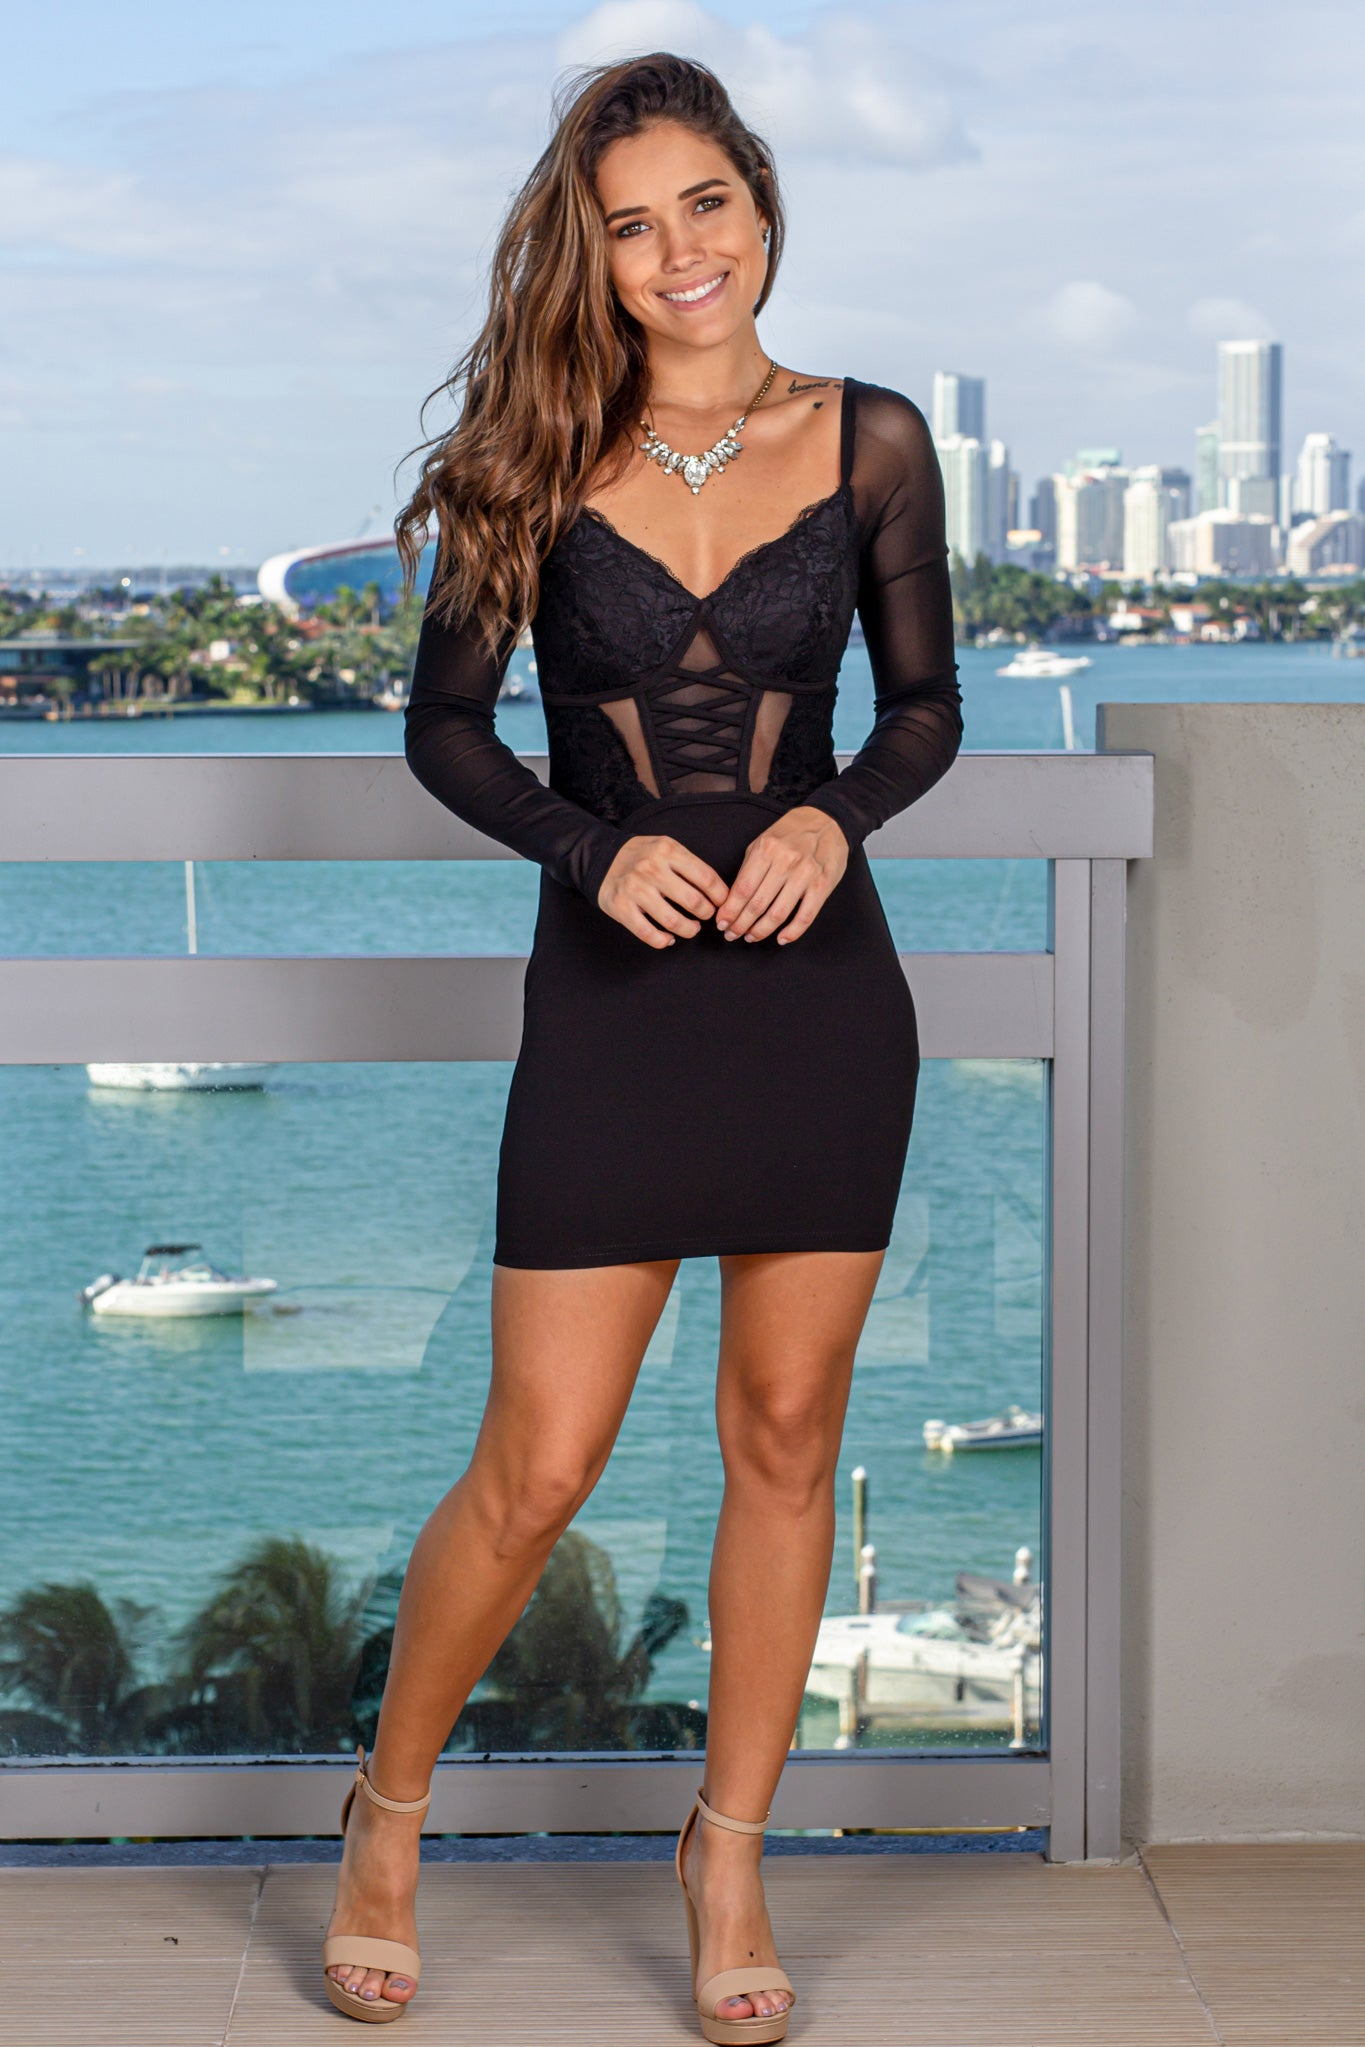 Black Short Dress with Corset Top